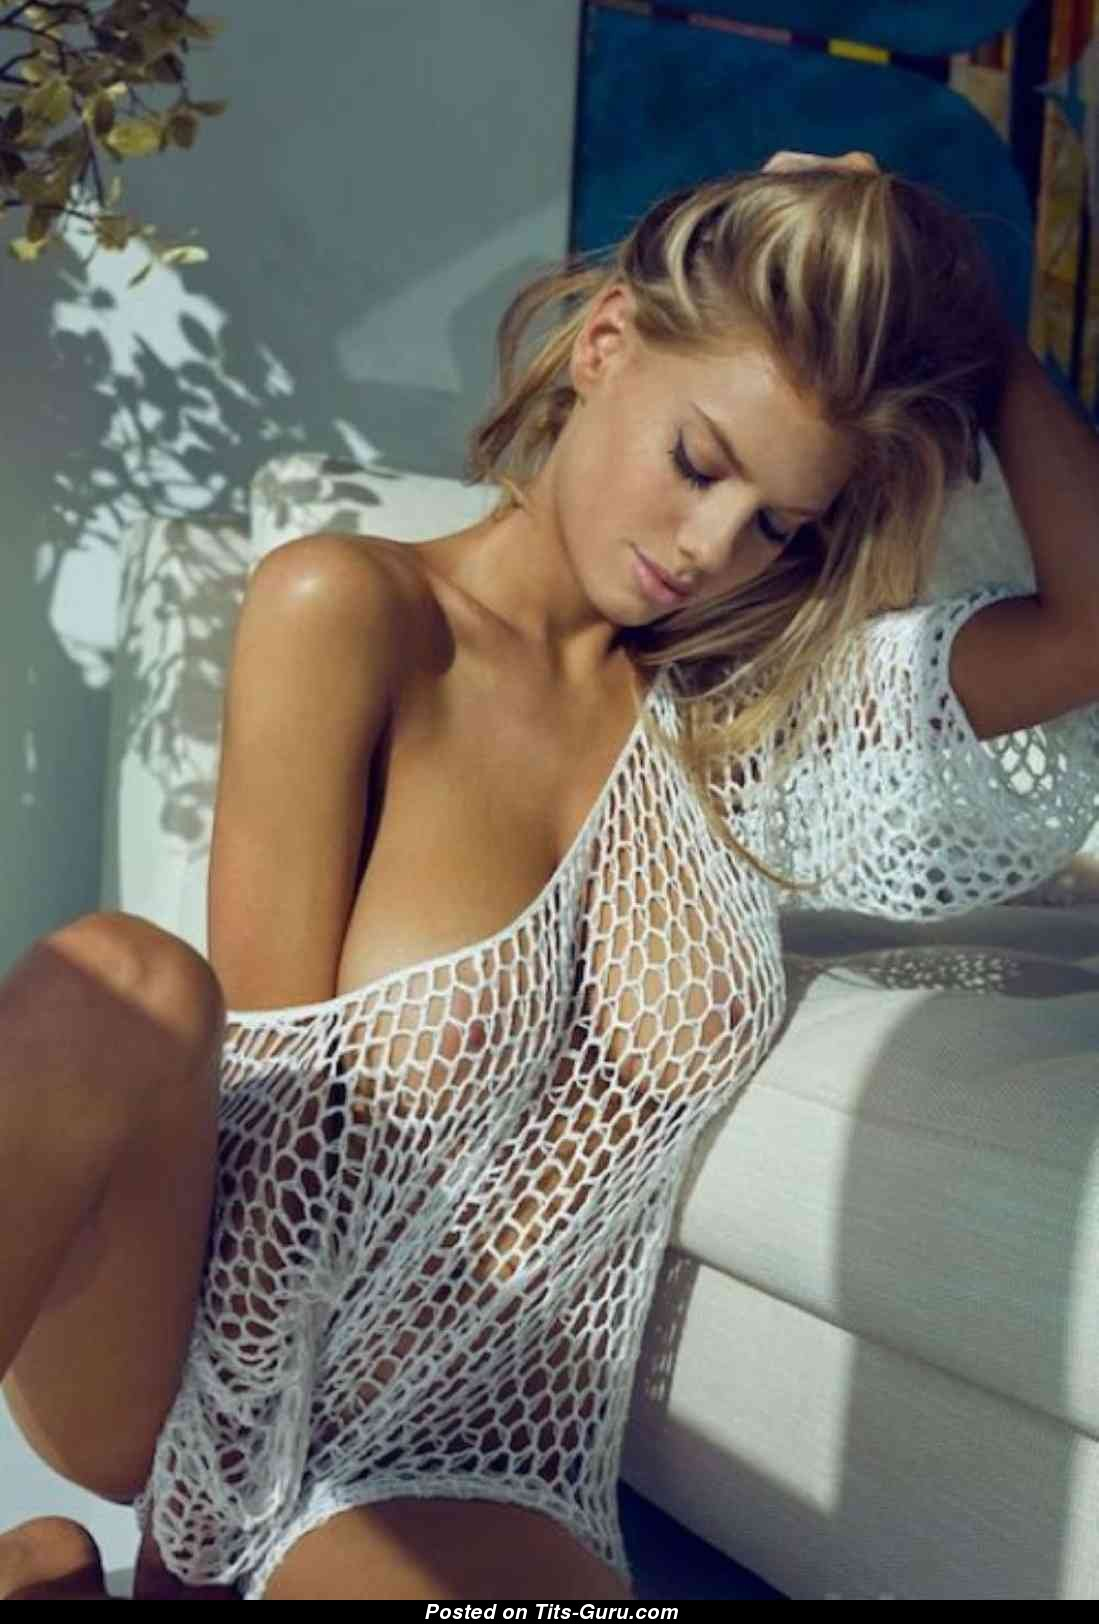 Commit playboy nude charlotte mckinney congratulate, seems